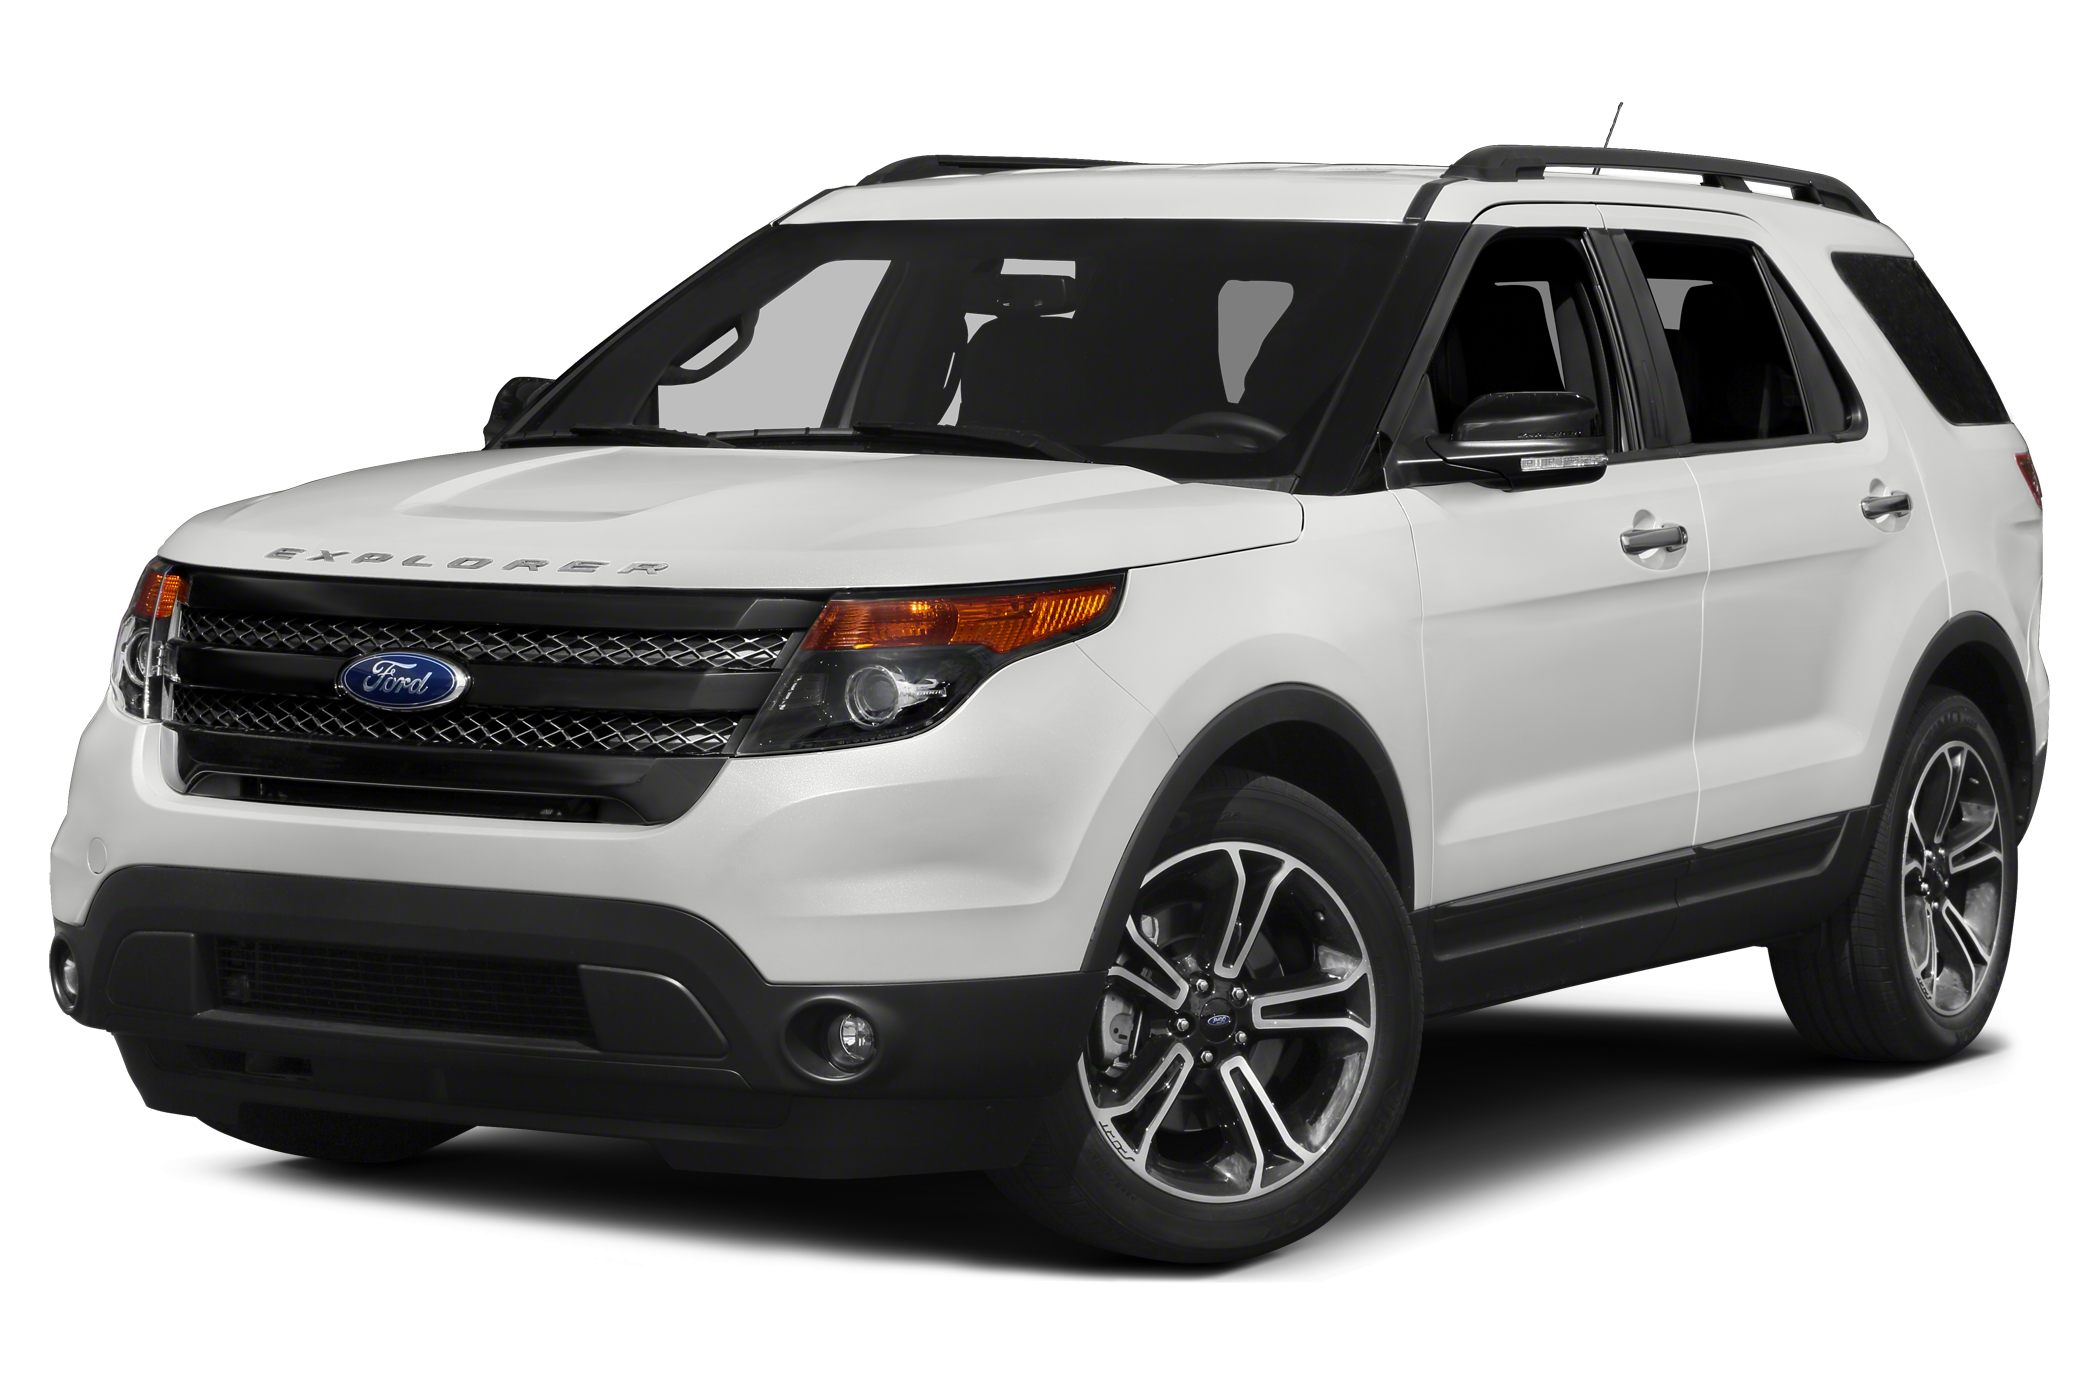 2015 ford explorer sport 4dr 4x4 pricing and options